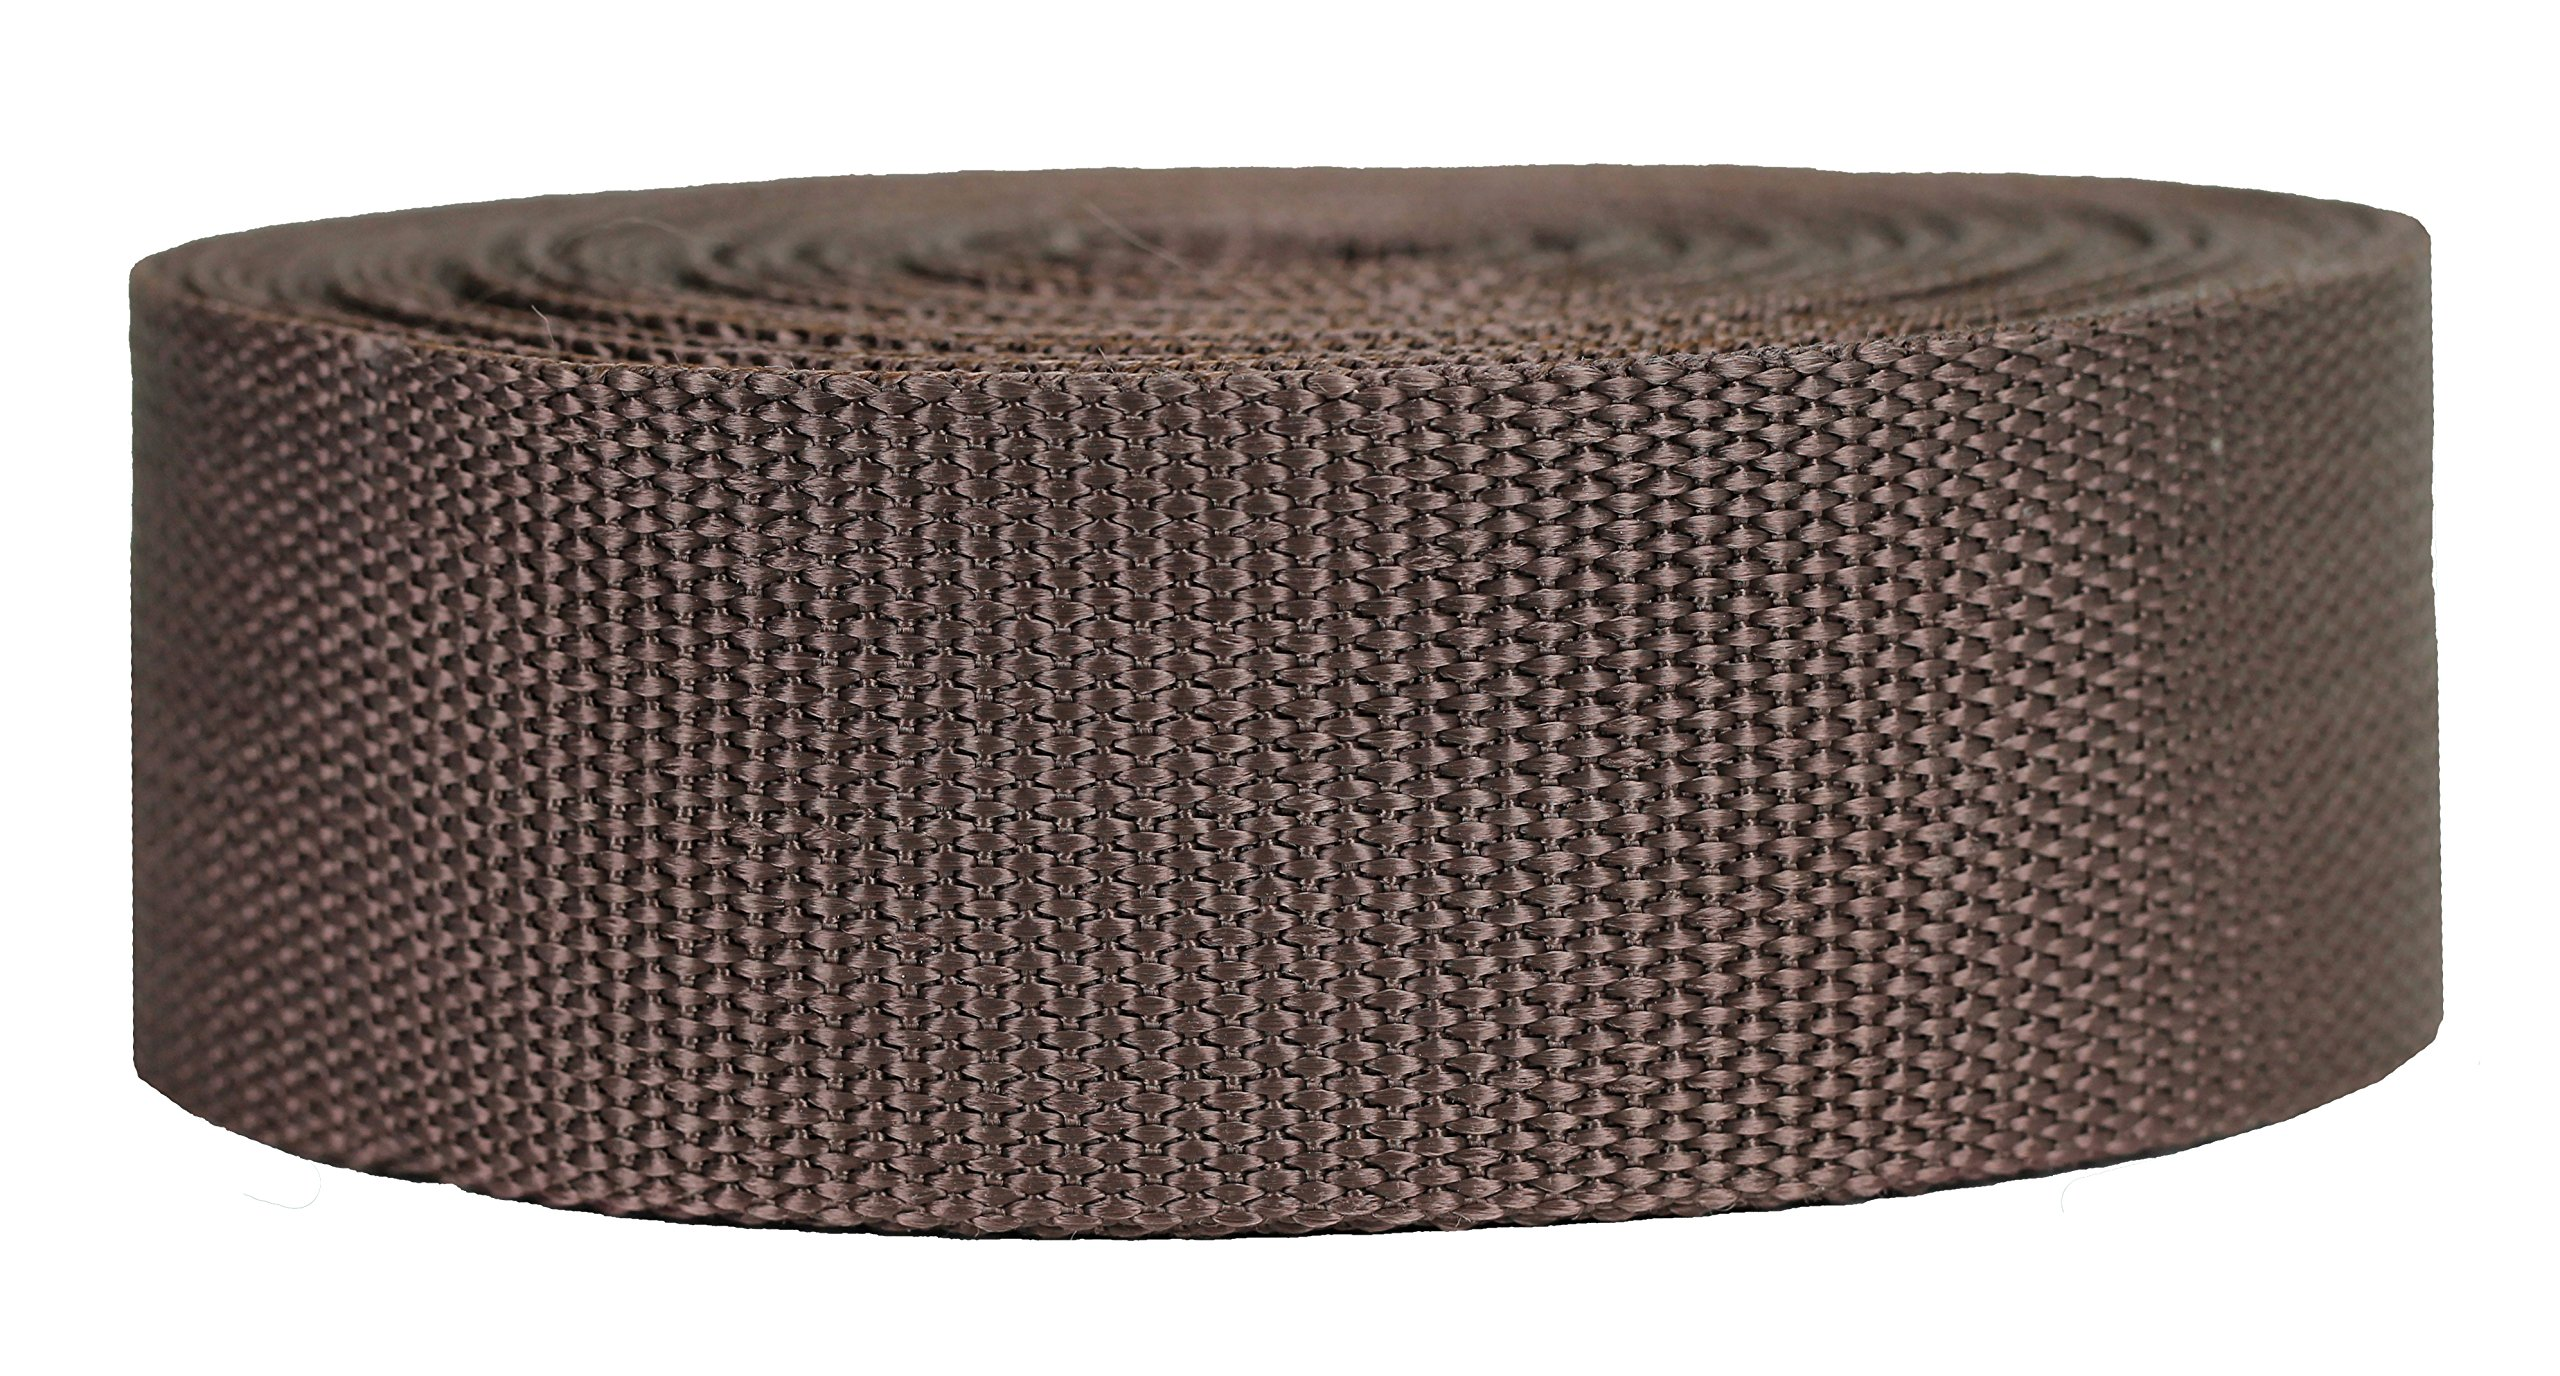 Strapworks Heavyweight Polypropylene Webbing - Heavy Duty Poly Strapping for Outdoor DIY Gear Repair, 2 Inch x 10 Yards - Brown